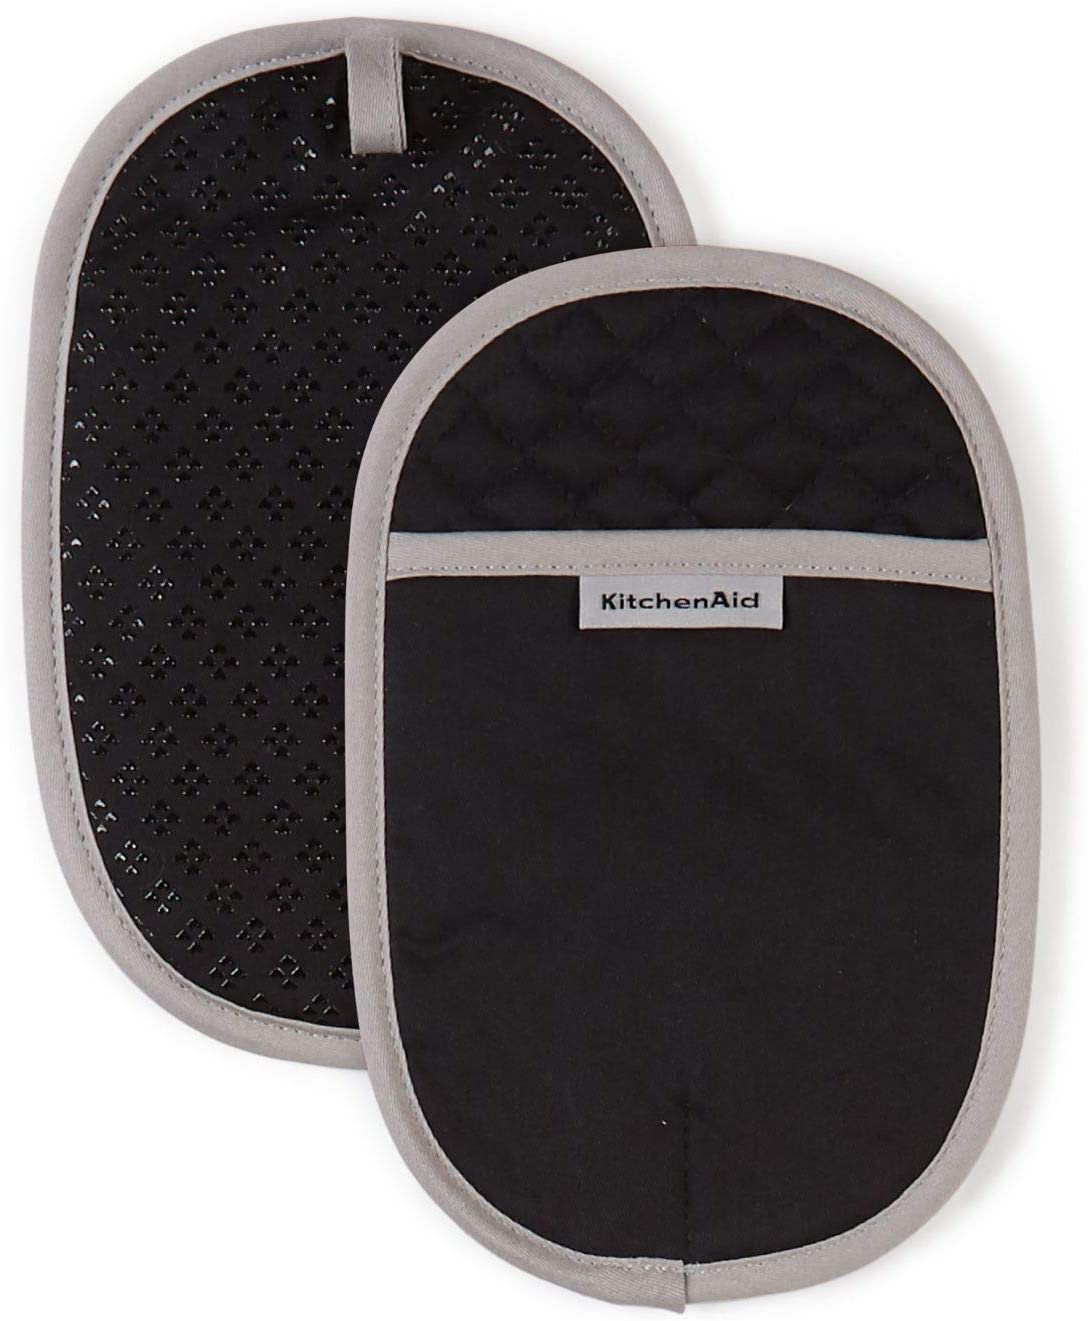 KitchenAid Asteroid Cotton Pot Holders with Silicone Grip, Set of 2, Black